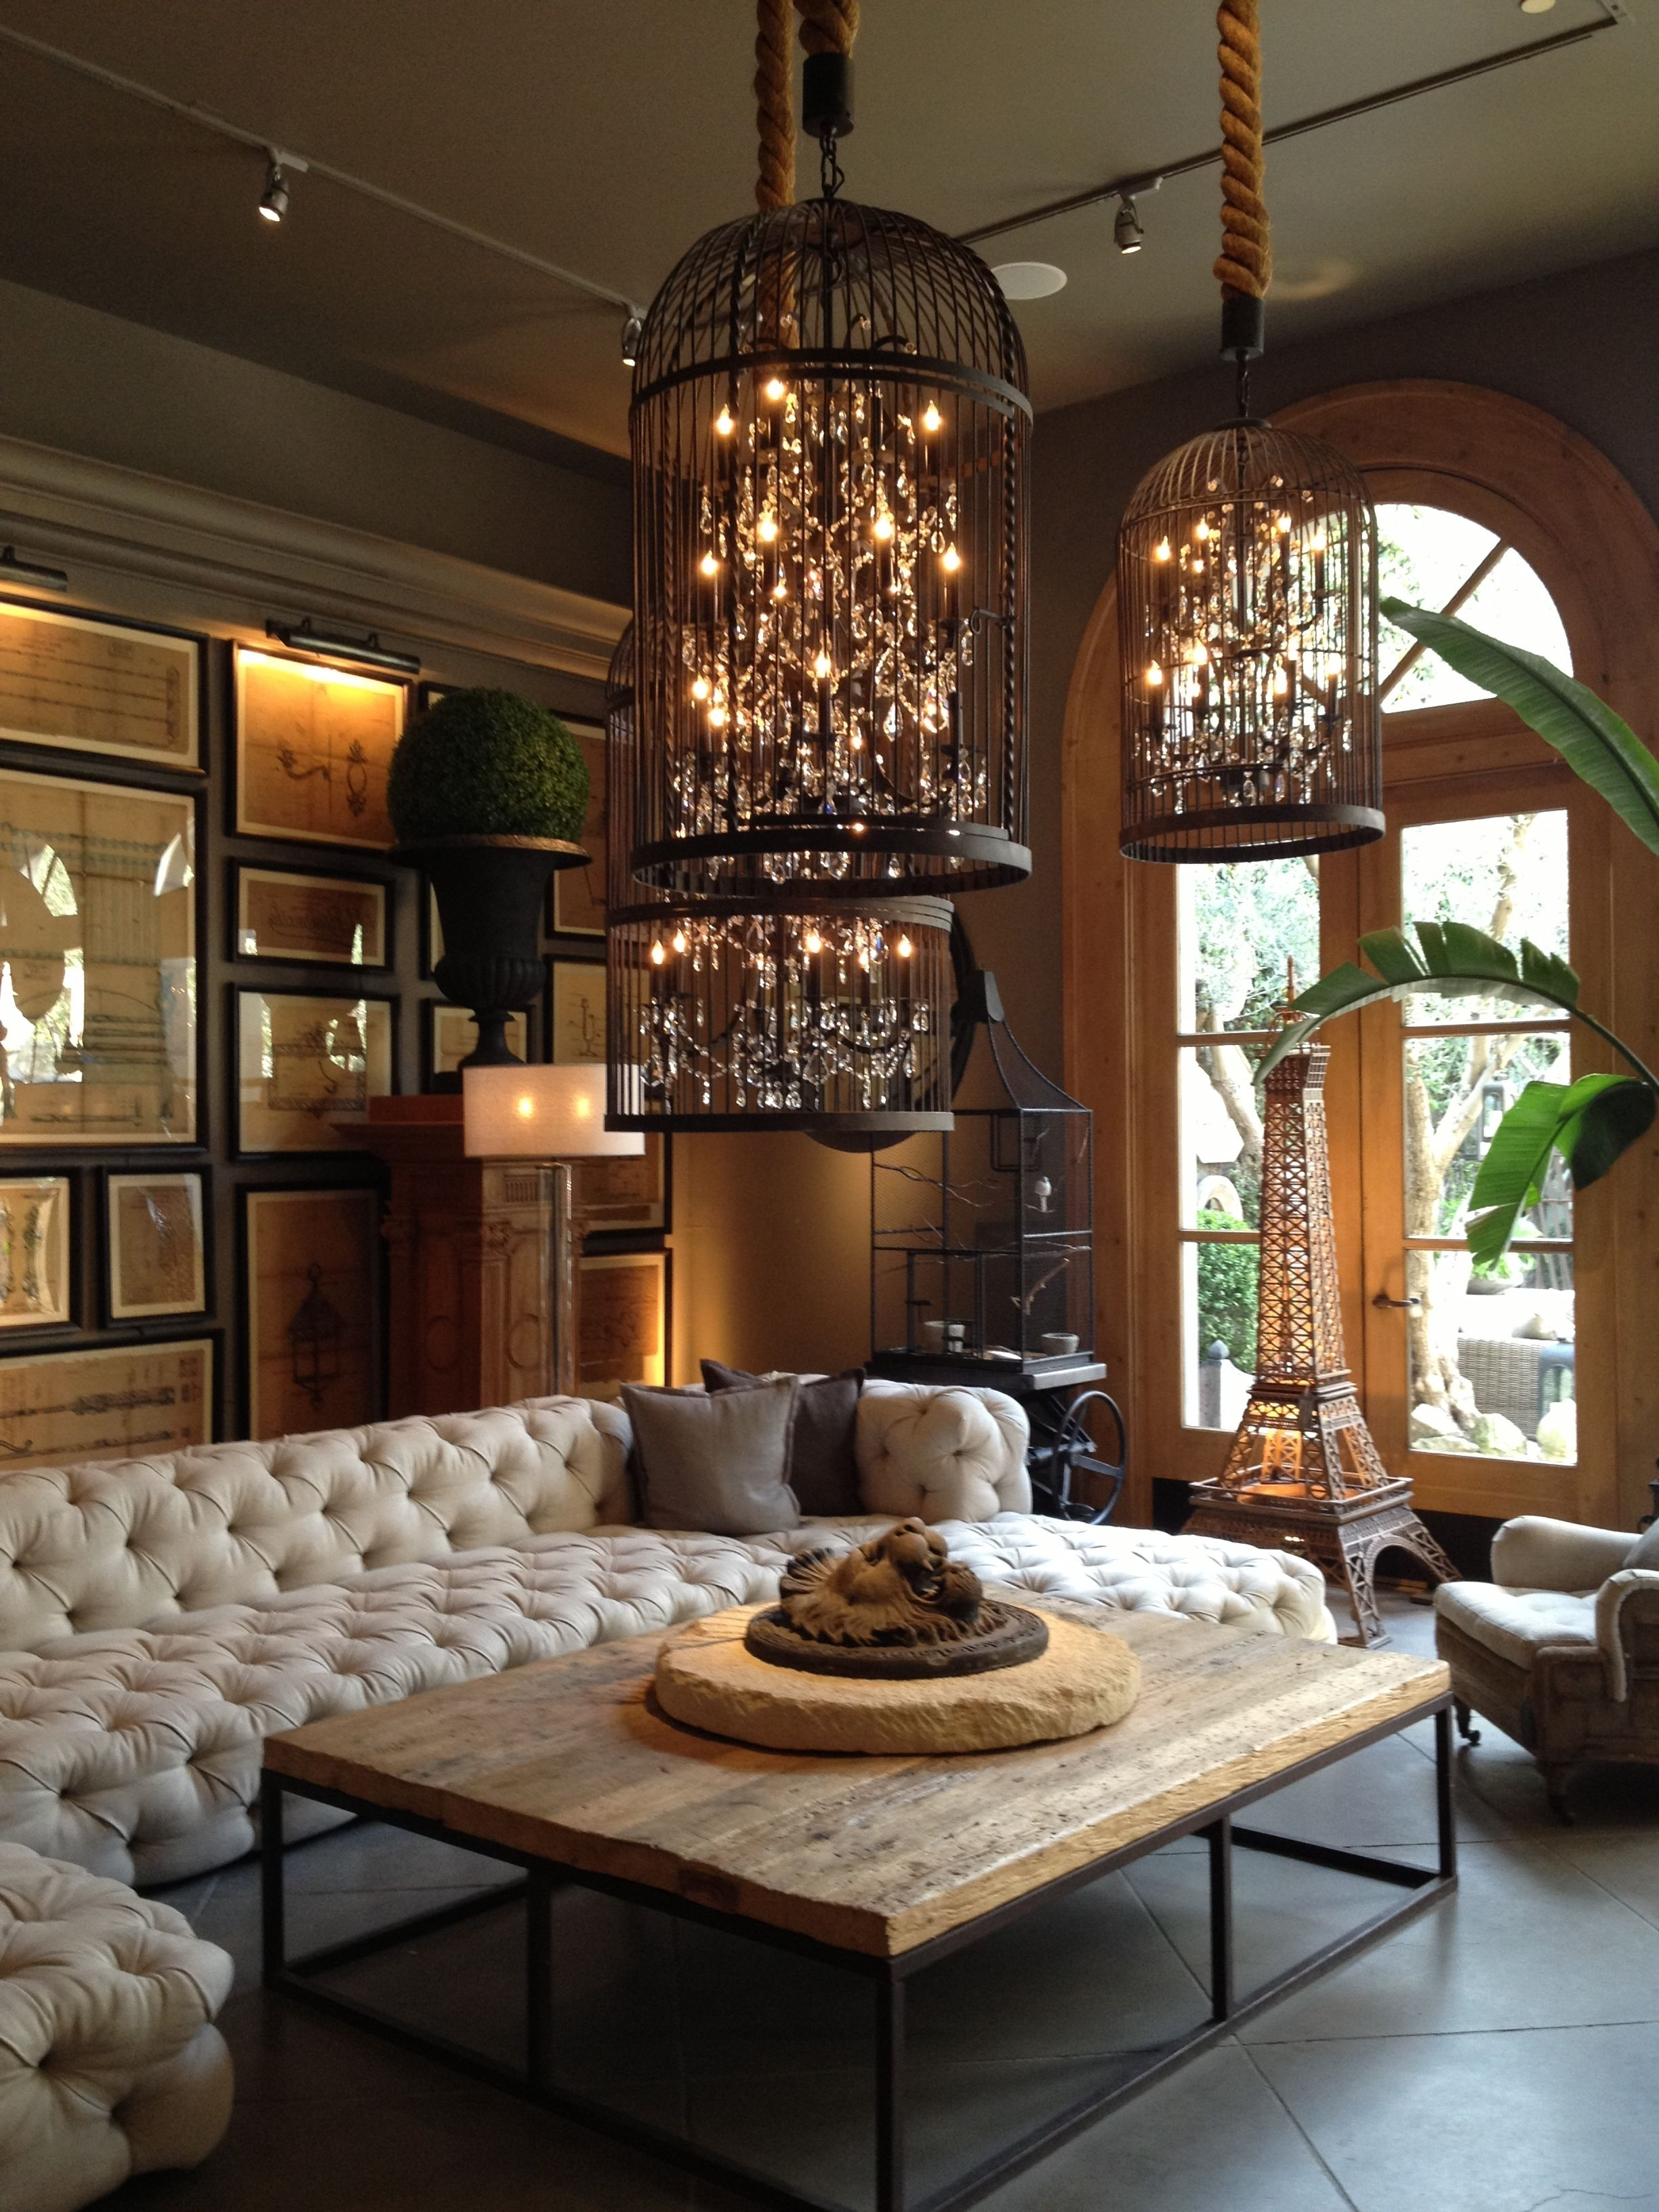 Pinterest Within Restoration Hardware Outdoor Hanging Lights (View 10 of 20)